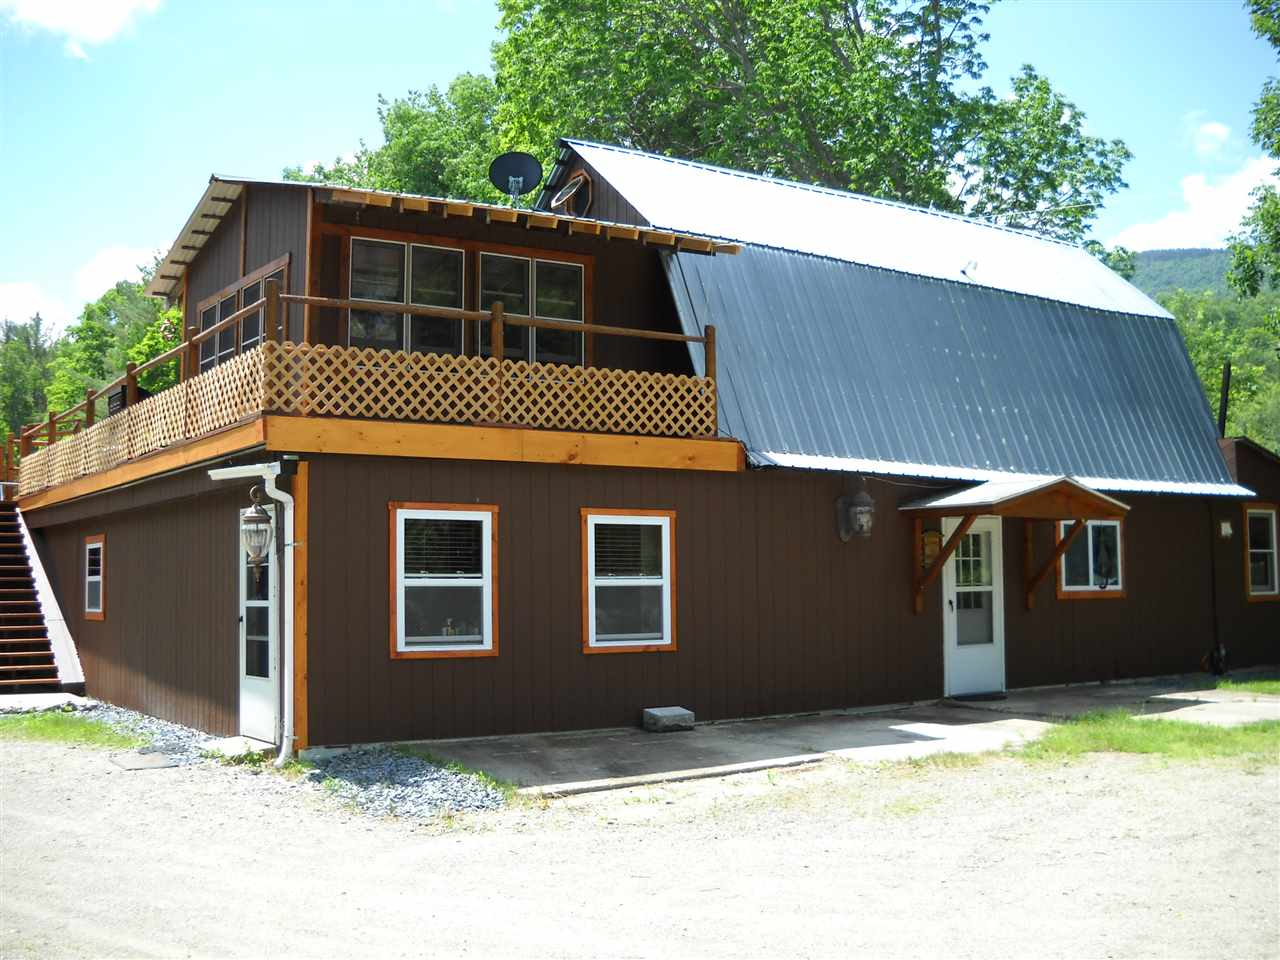 MLS 4762395: 1153 NH Route 25A, Orford NH